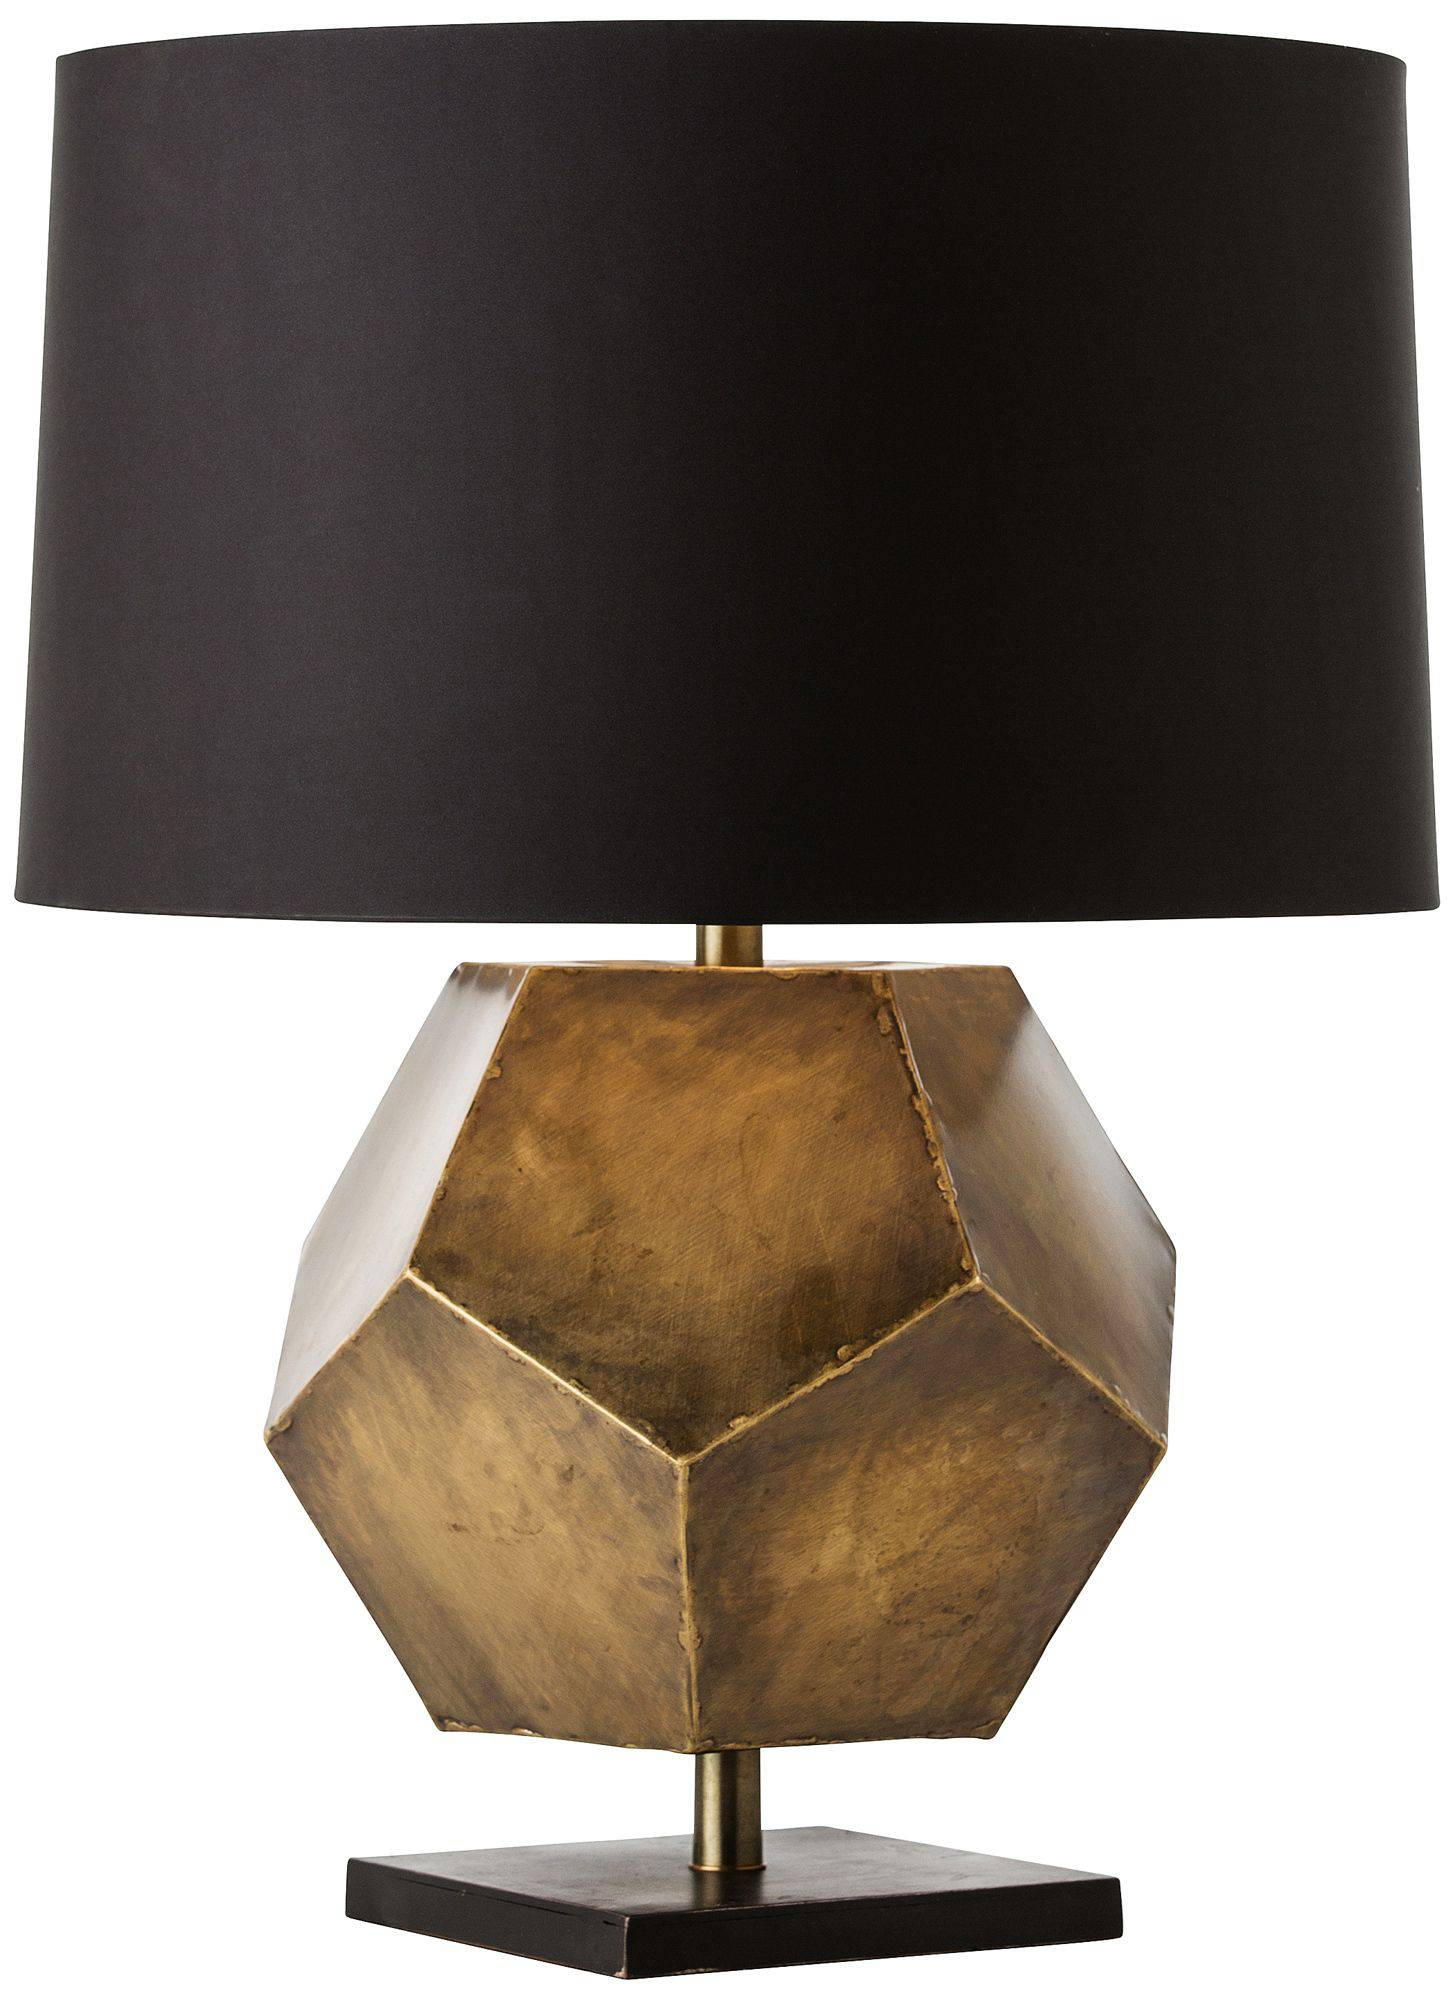 ARteriors Home Drea Geometric table lamp